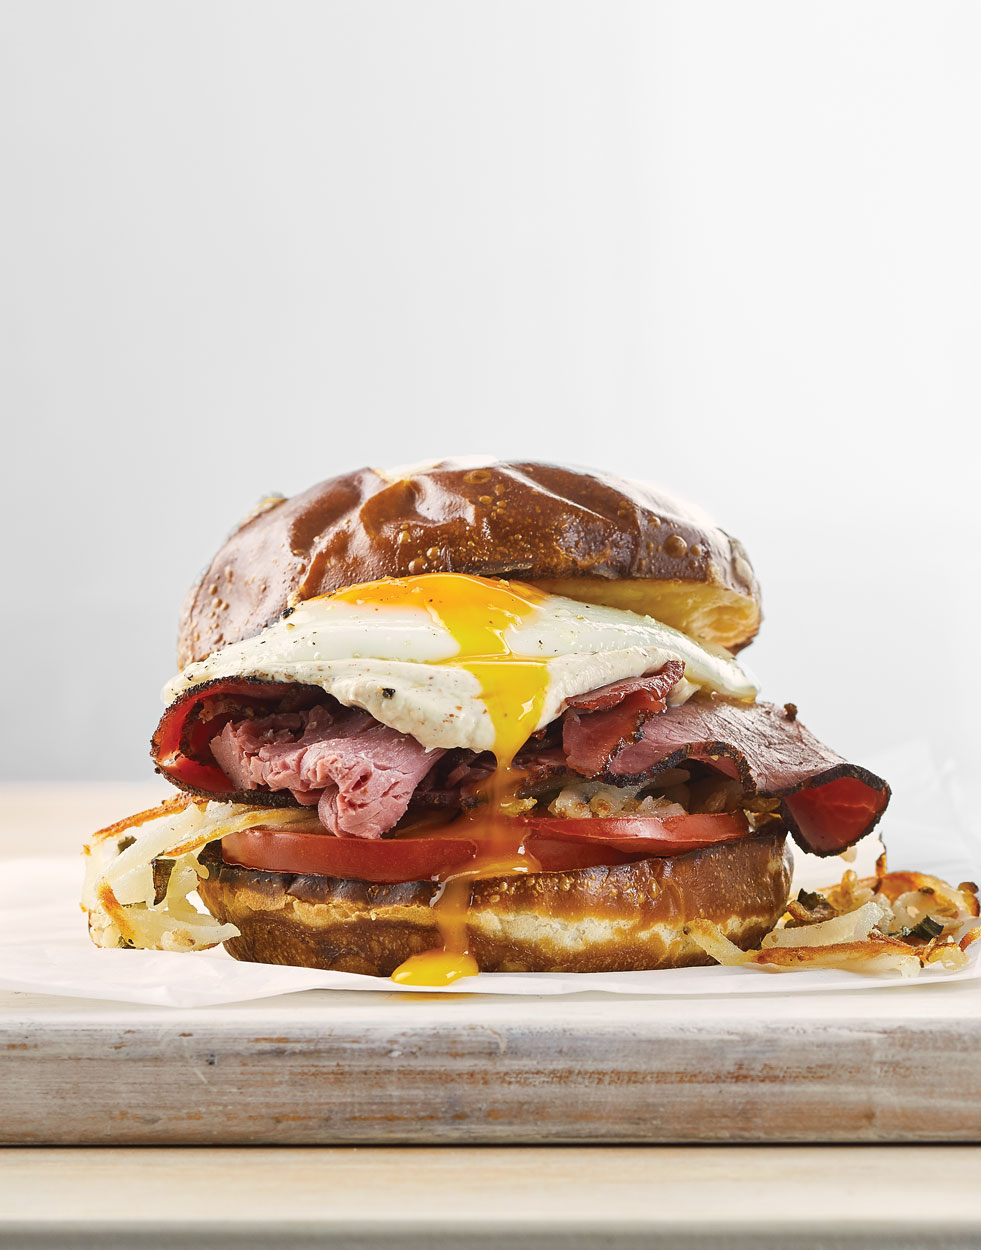 Pastrami & Egg Sandwiches with hash browns